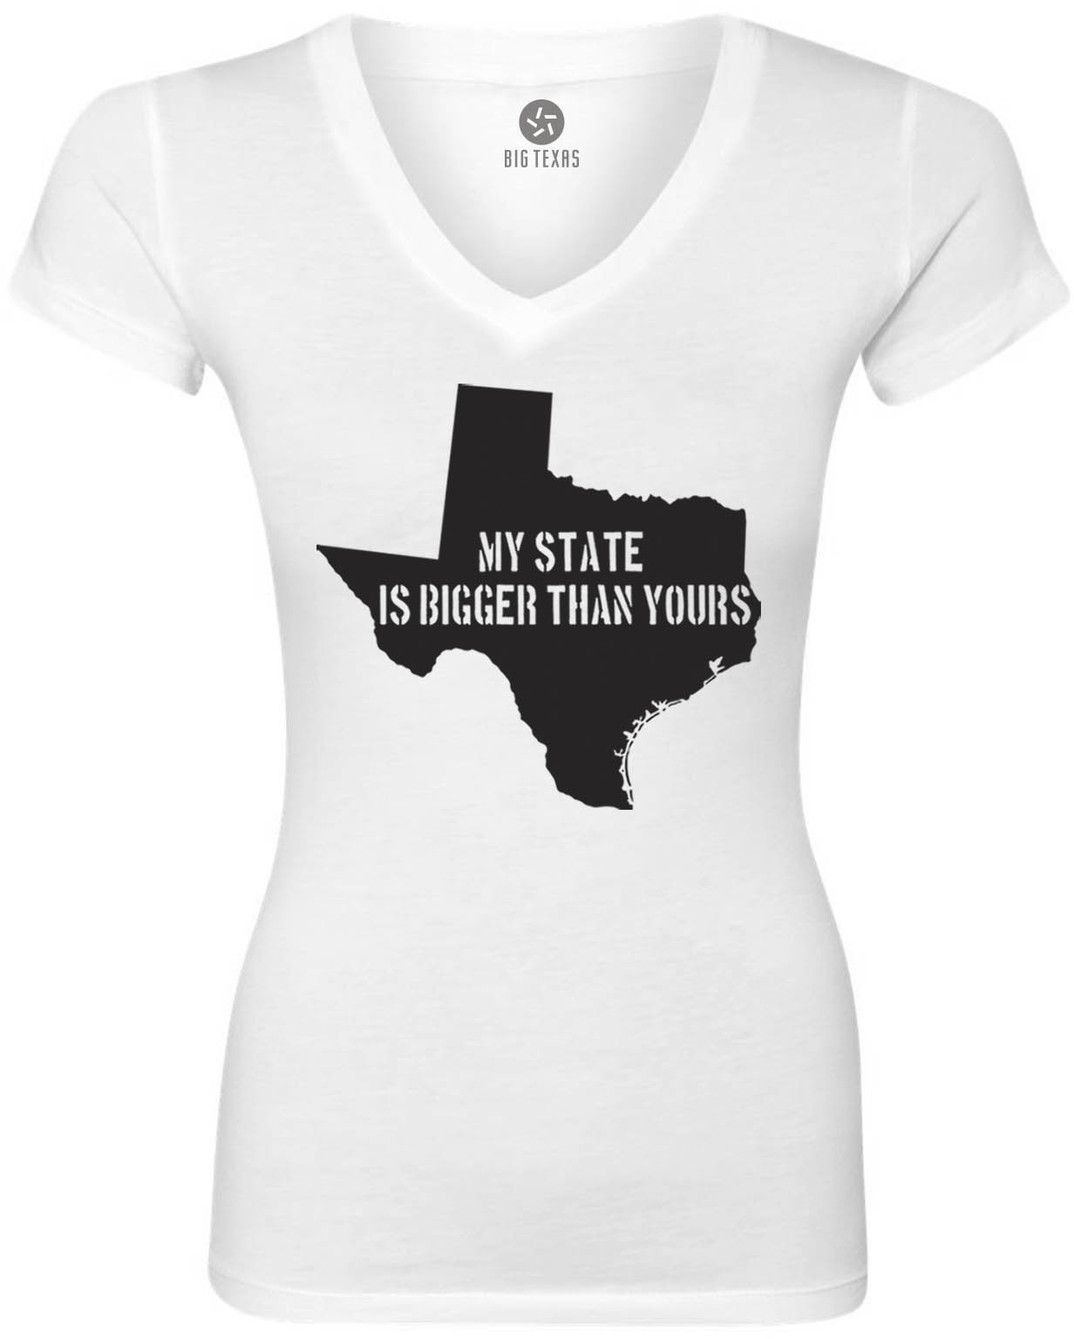 My State is Bigger Than Yours Women's Short-Sleeve V-Neck T-Shirt